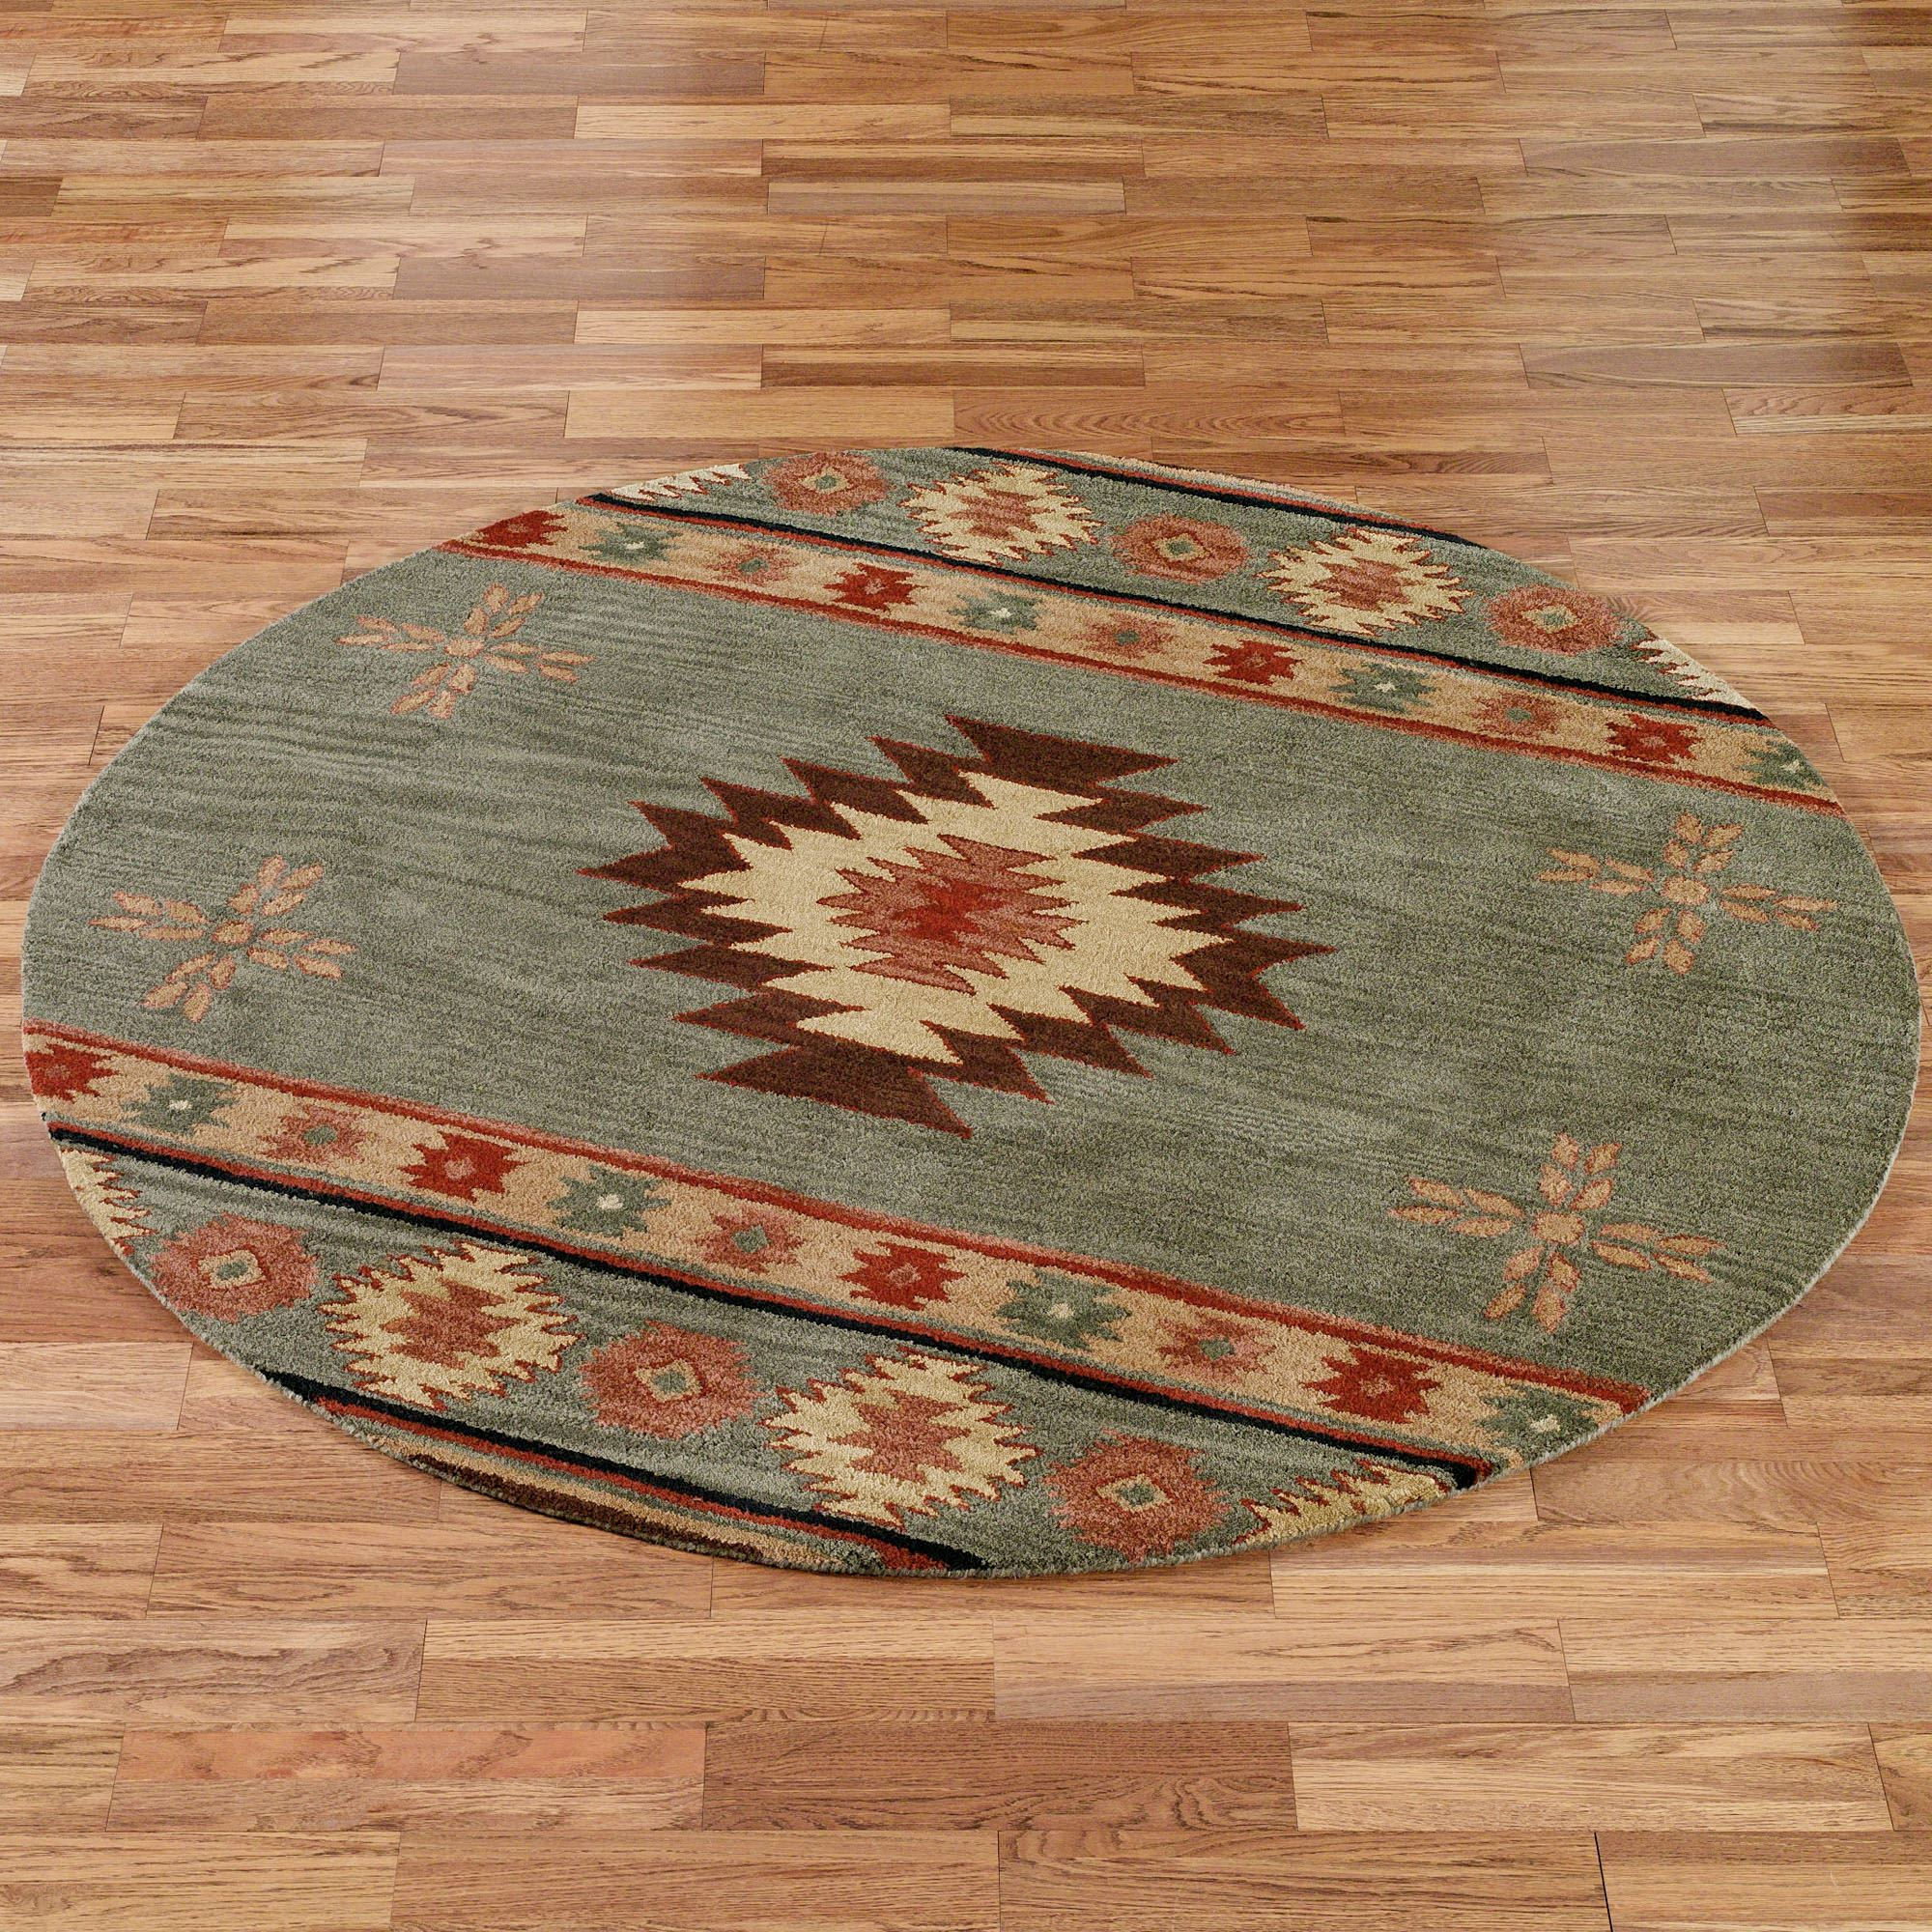 carpets for rugs deco oriental chinese nyc art vintage western sale antique rug